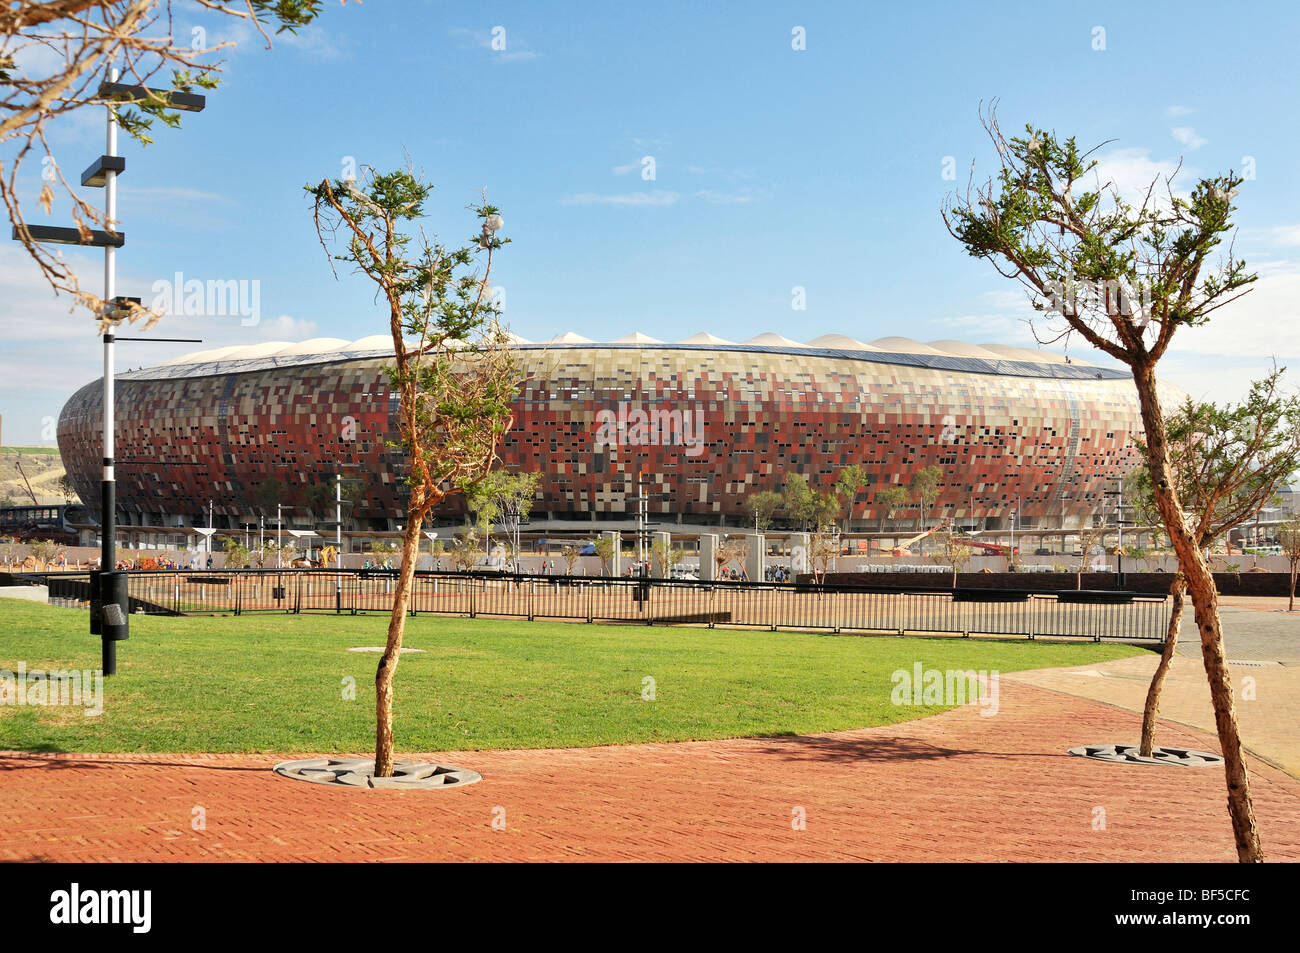 FIFA World Cup 2010, construction site of the Soccer City Stadium in the Soweto district, Johannesburg, South Africa, - Stock Image